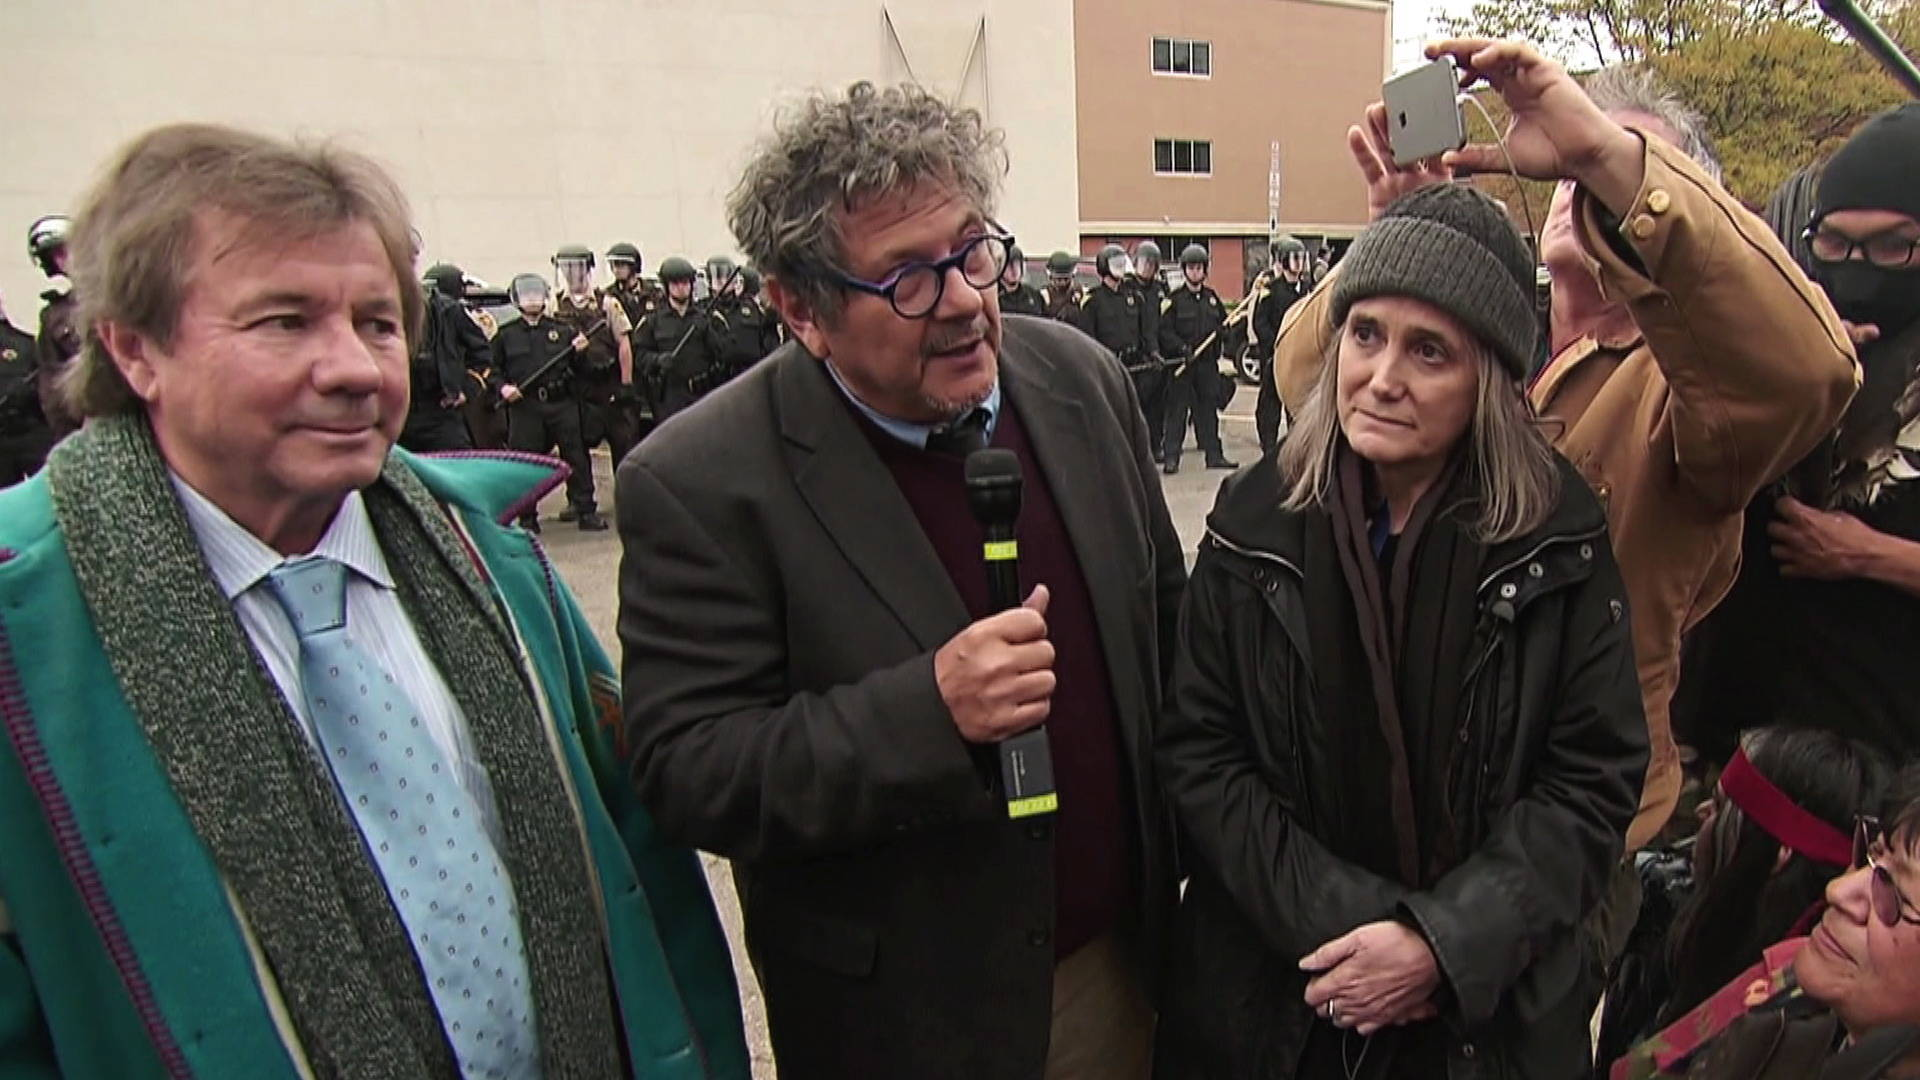 Press Freedom Victory Riot Charges Dropped Against Amy Goodman Over